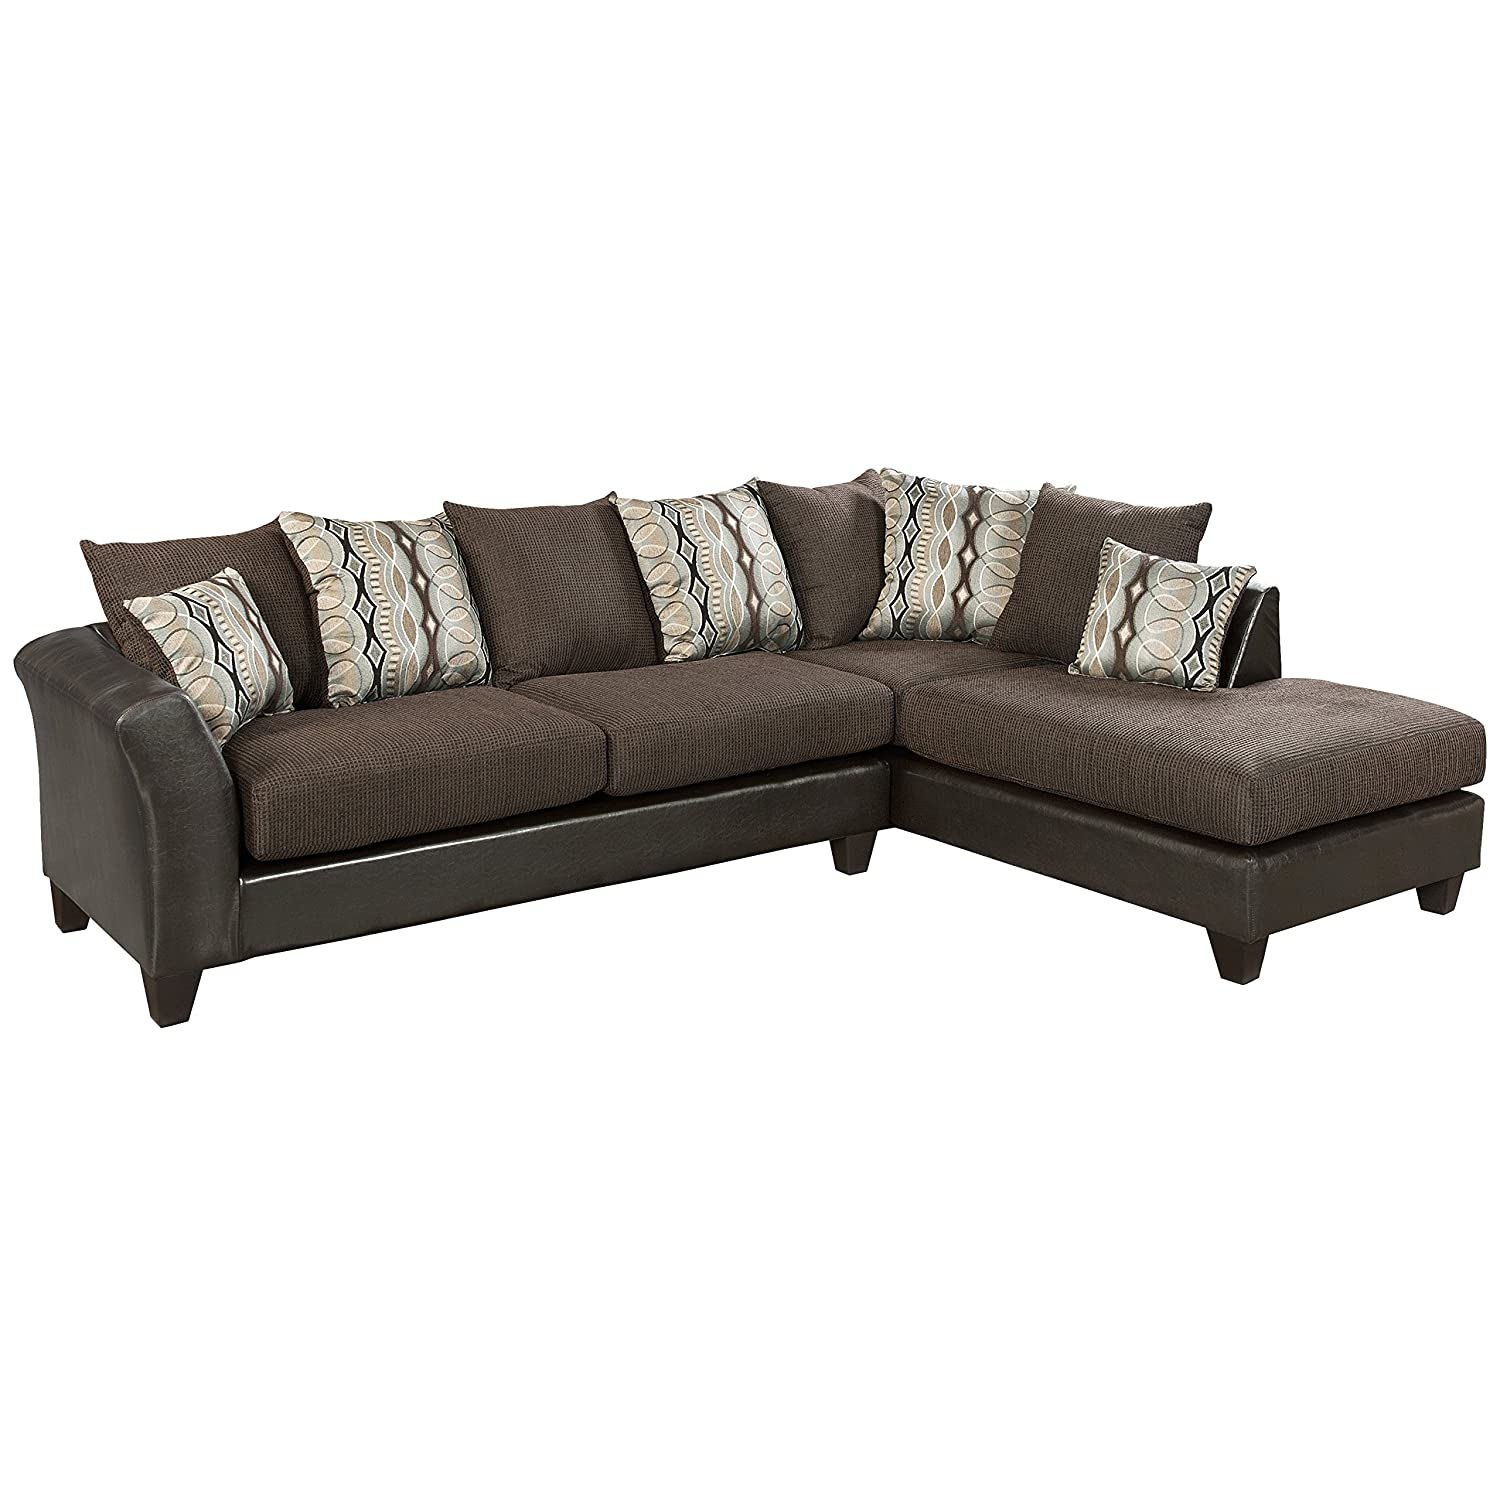 Flash Furniture Riverstone Rip Sable Chenille Sectional Sofa - Brown